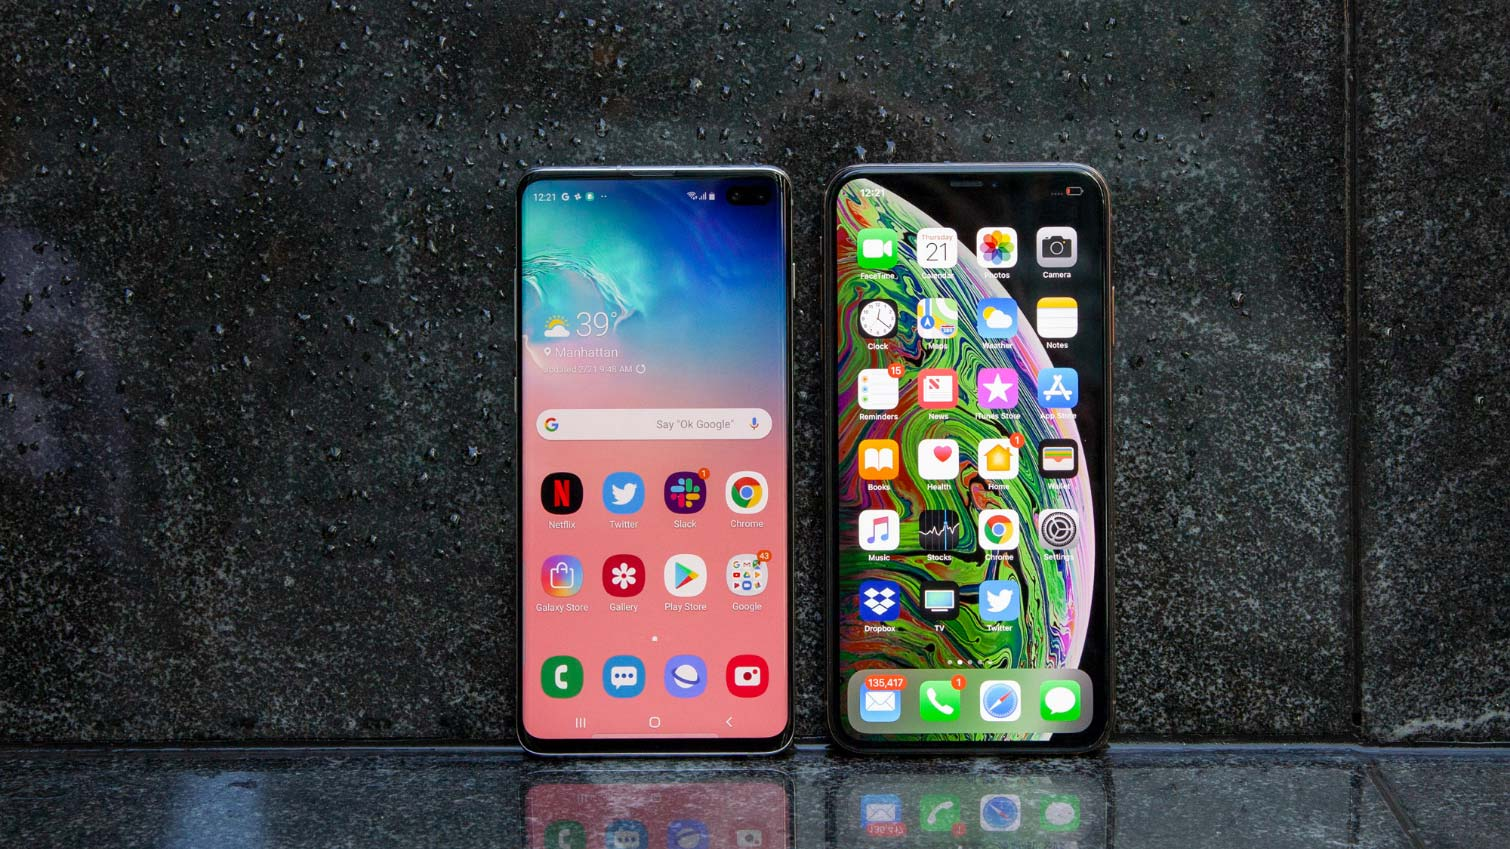 Best Smartphones 2019 - Here Are the 10 Best Phones Available